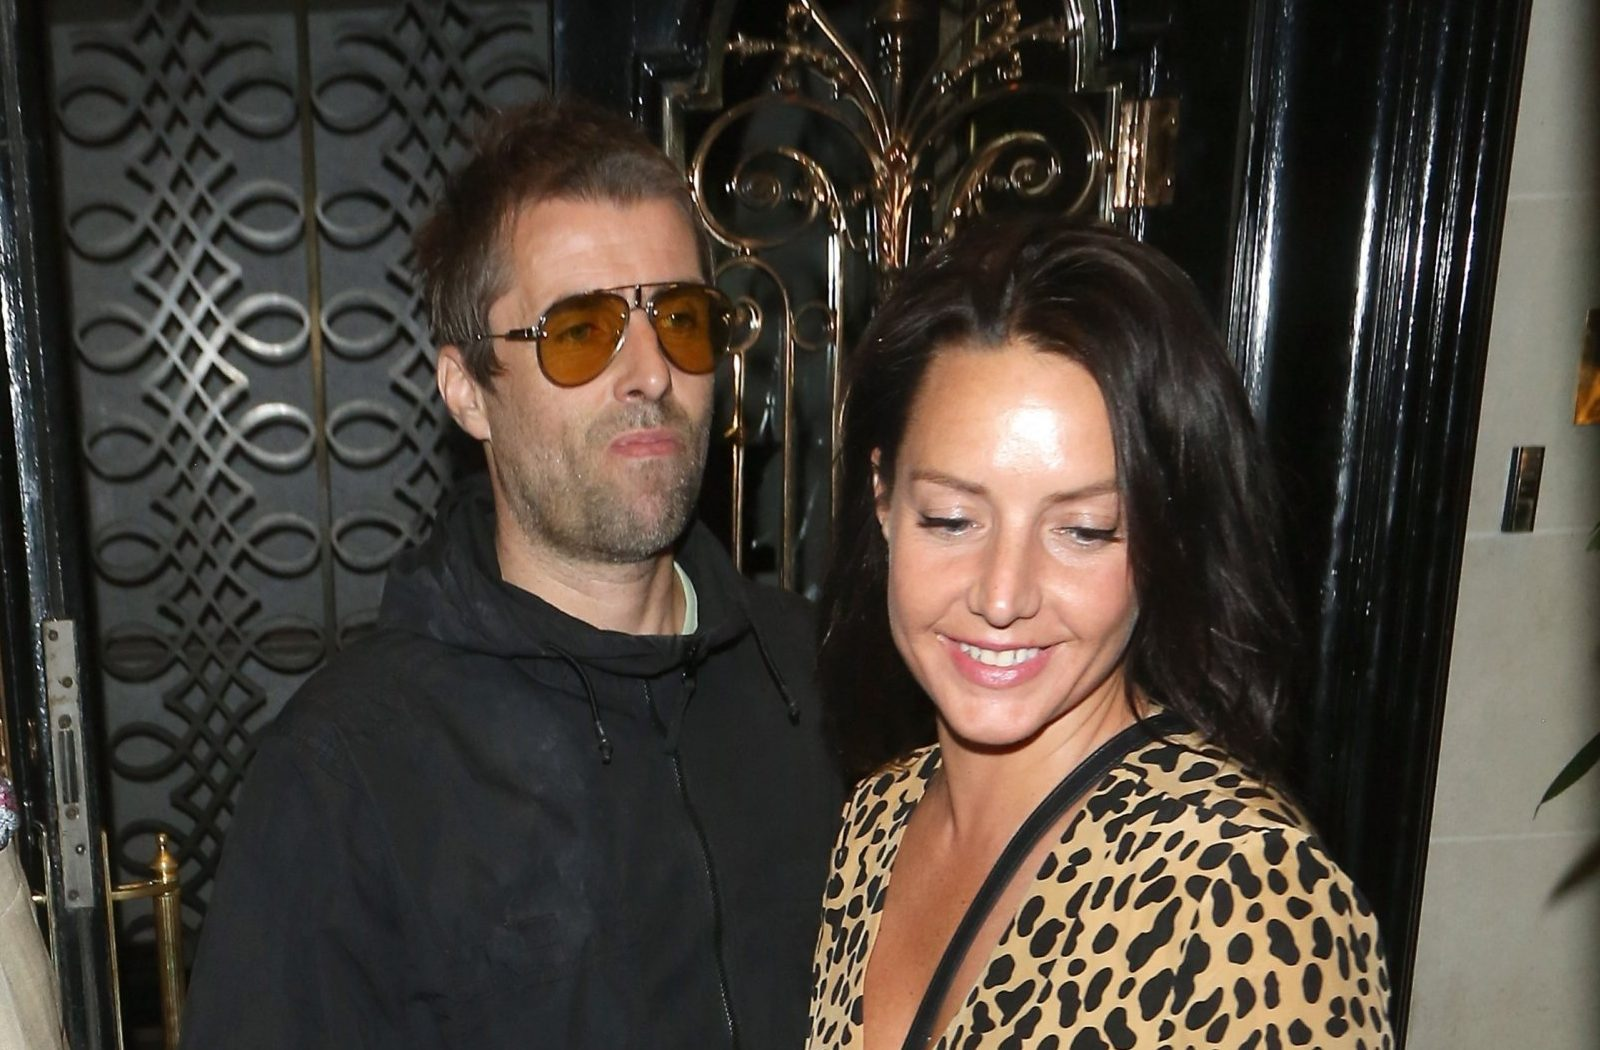 Debbie Gwyther puts Liam Gallagher controversy behind her as she celebrates singer's birthday